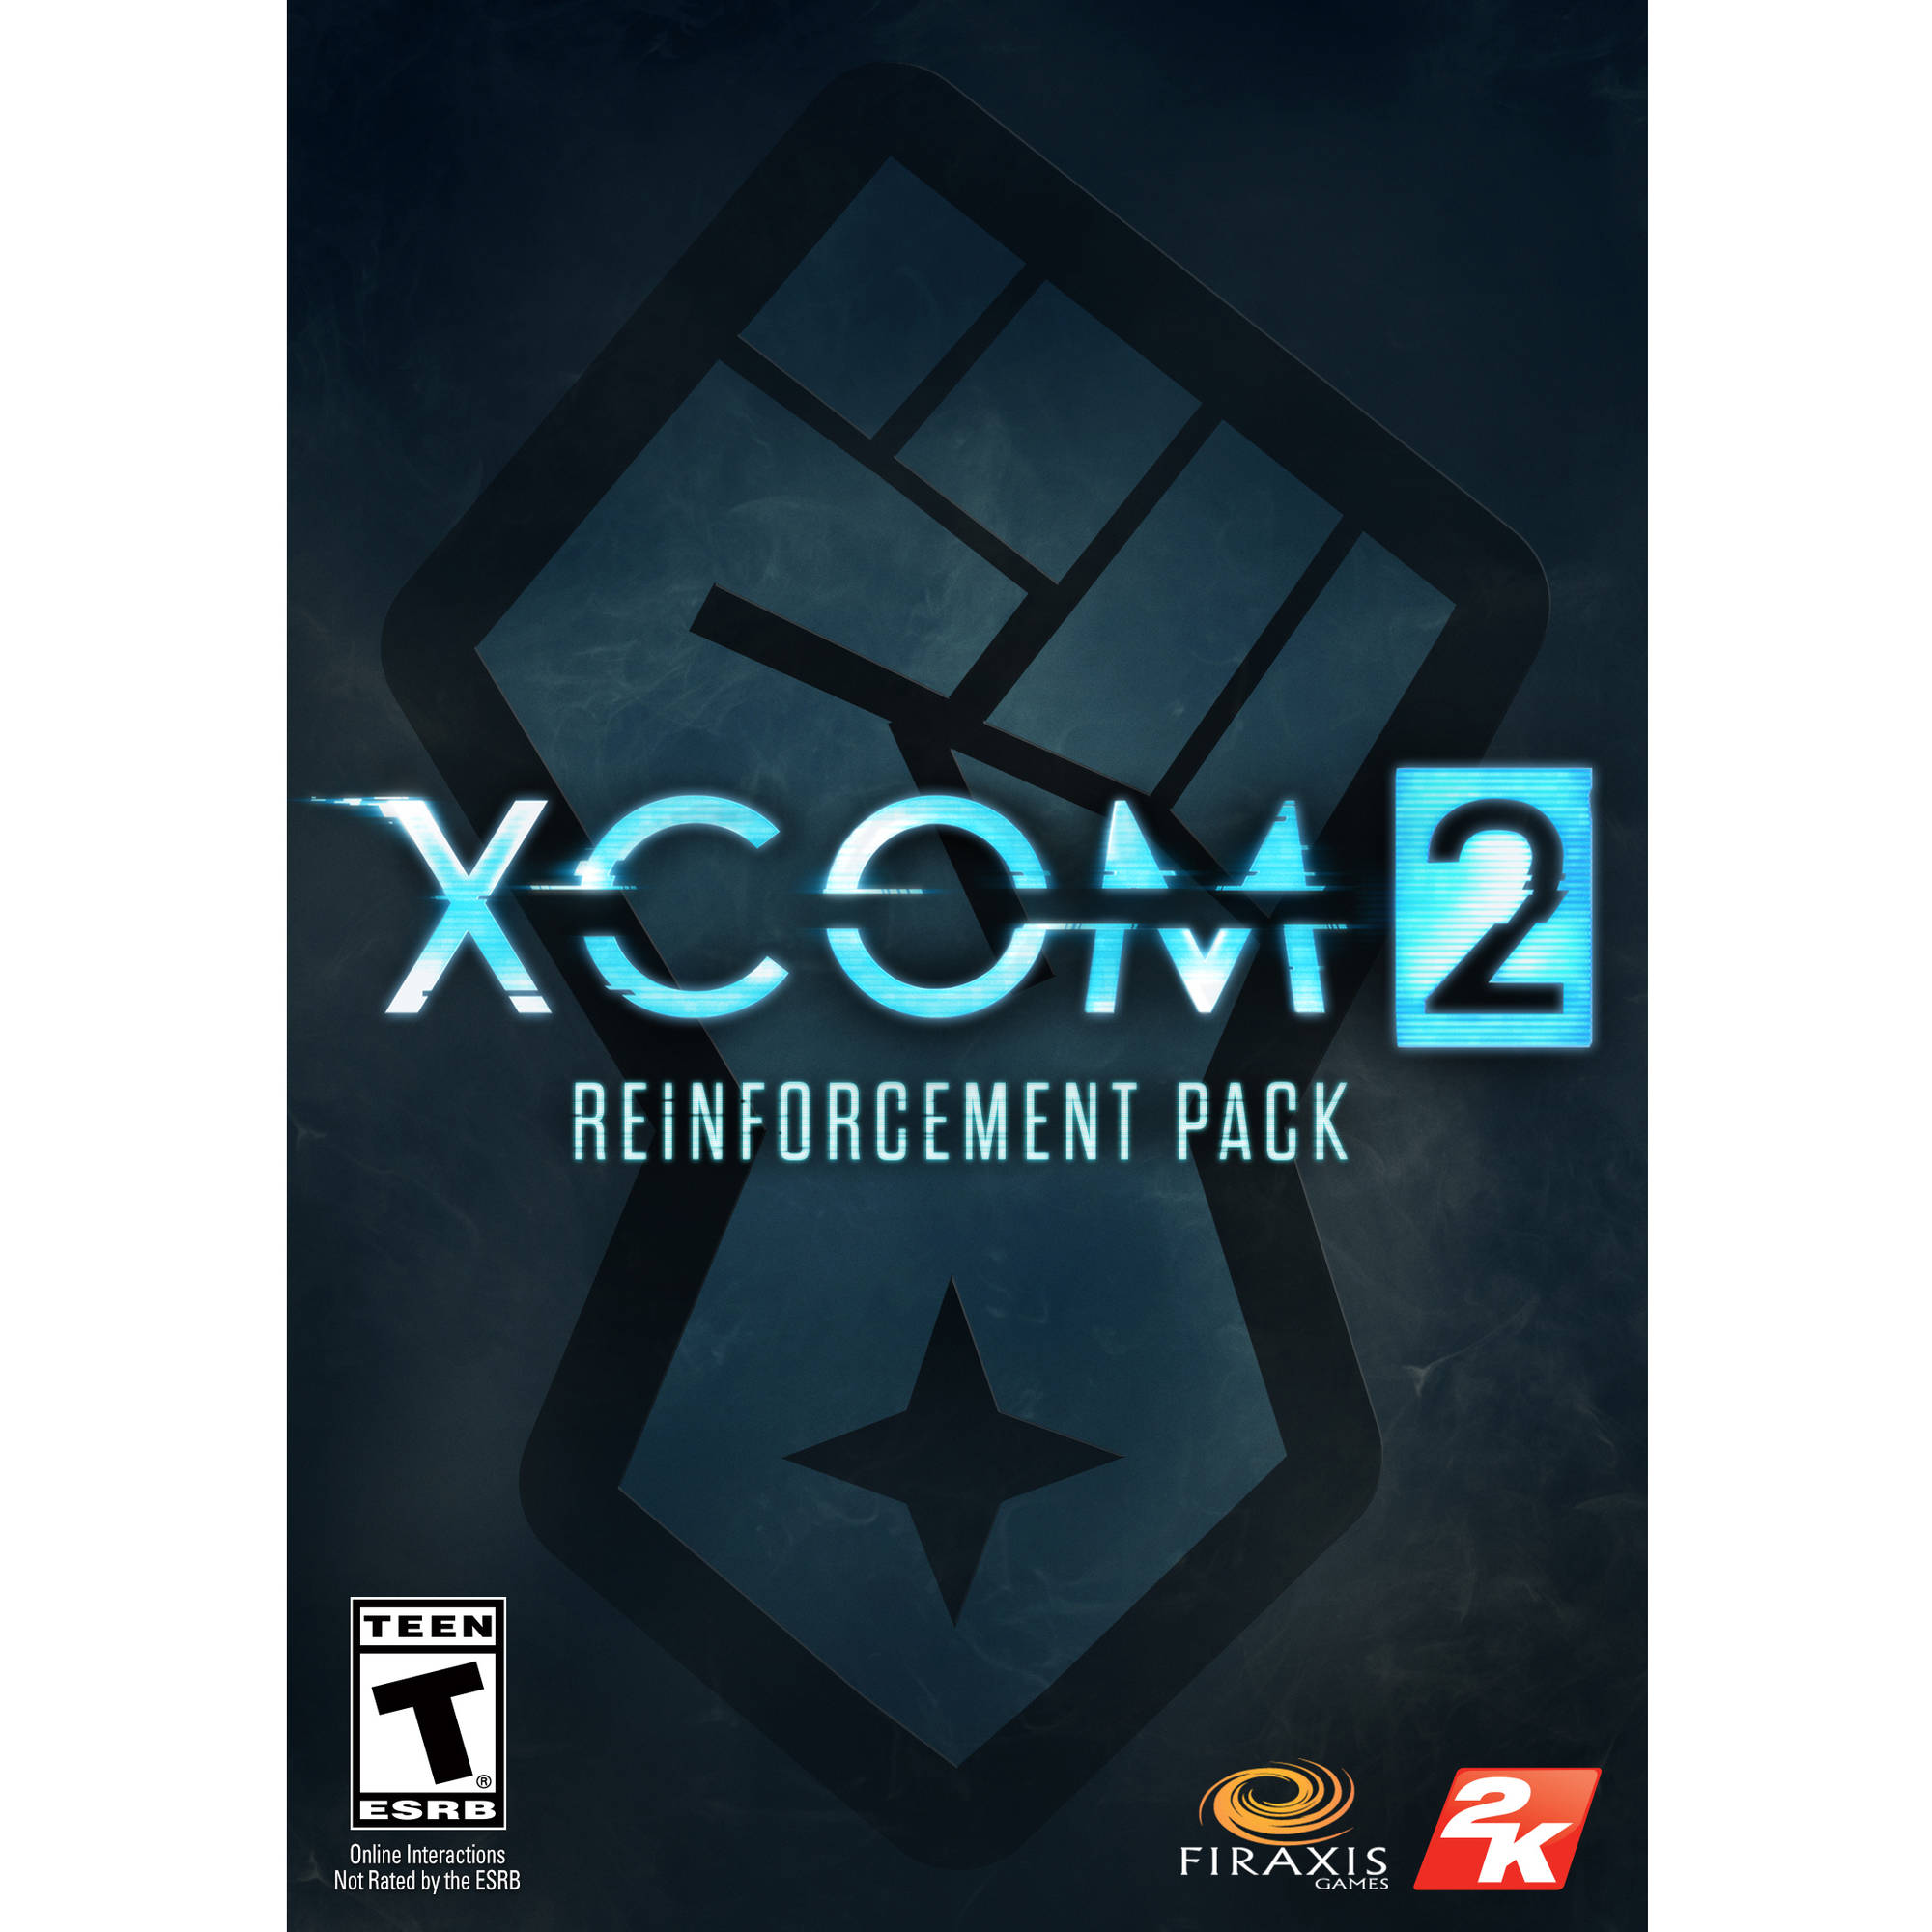 XCOM 2 Reinforcement Pack (Digital Code)